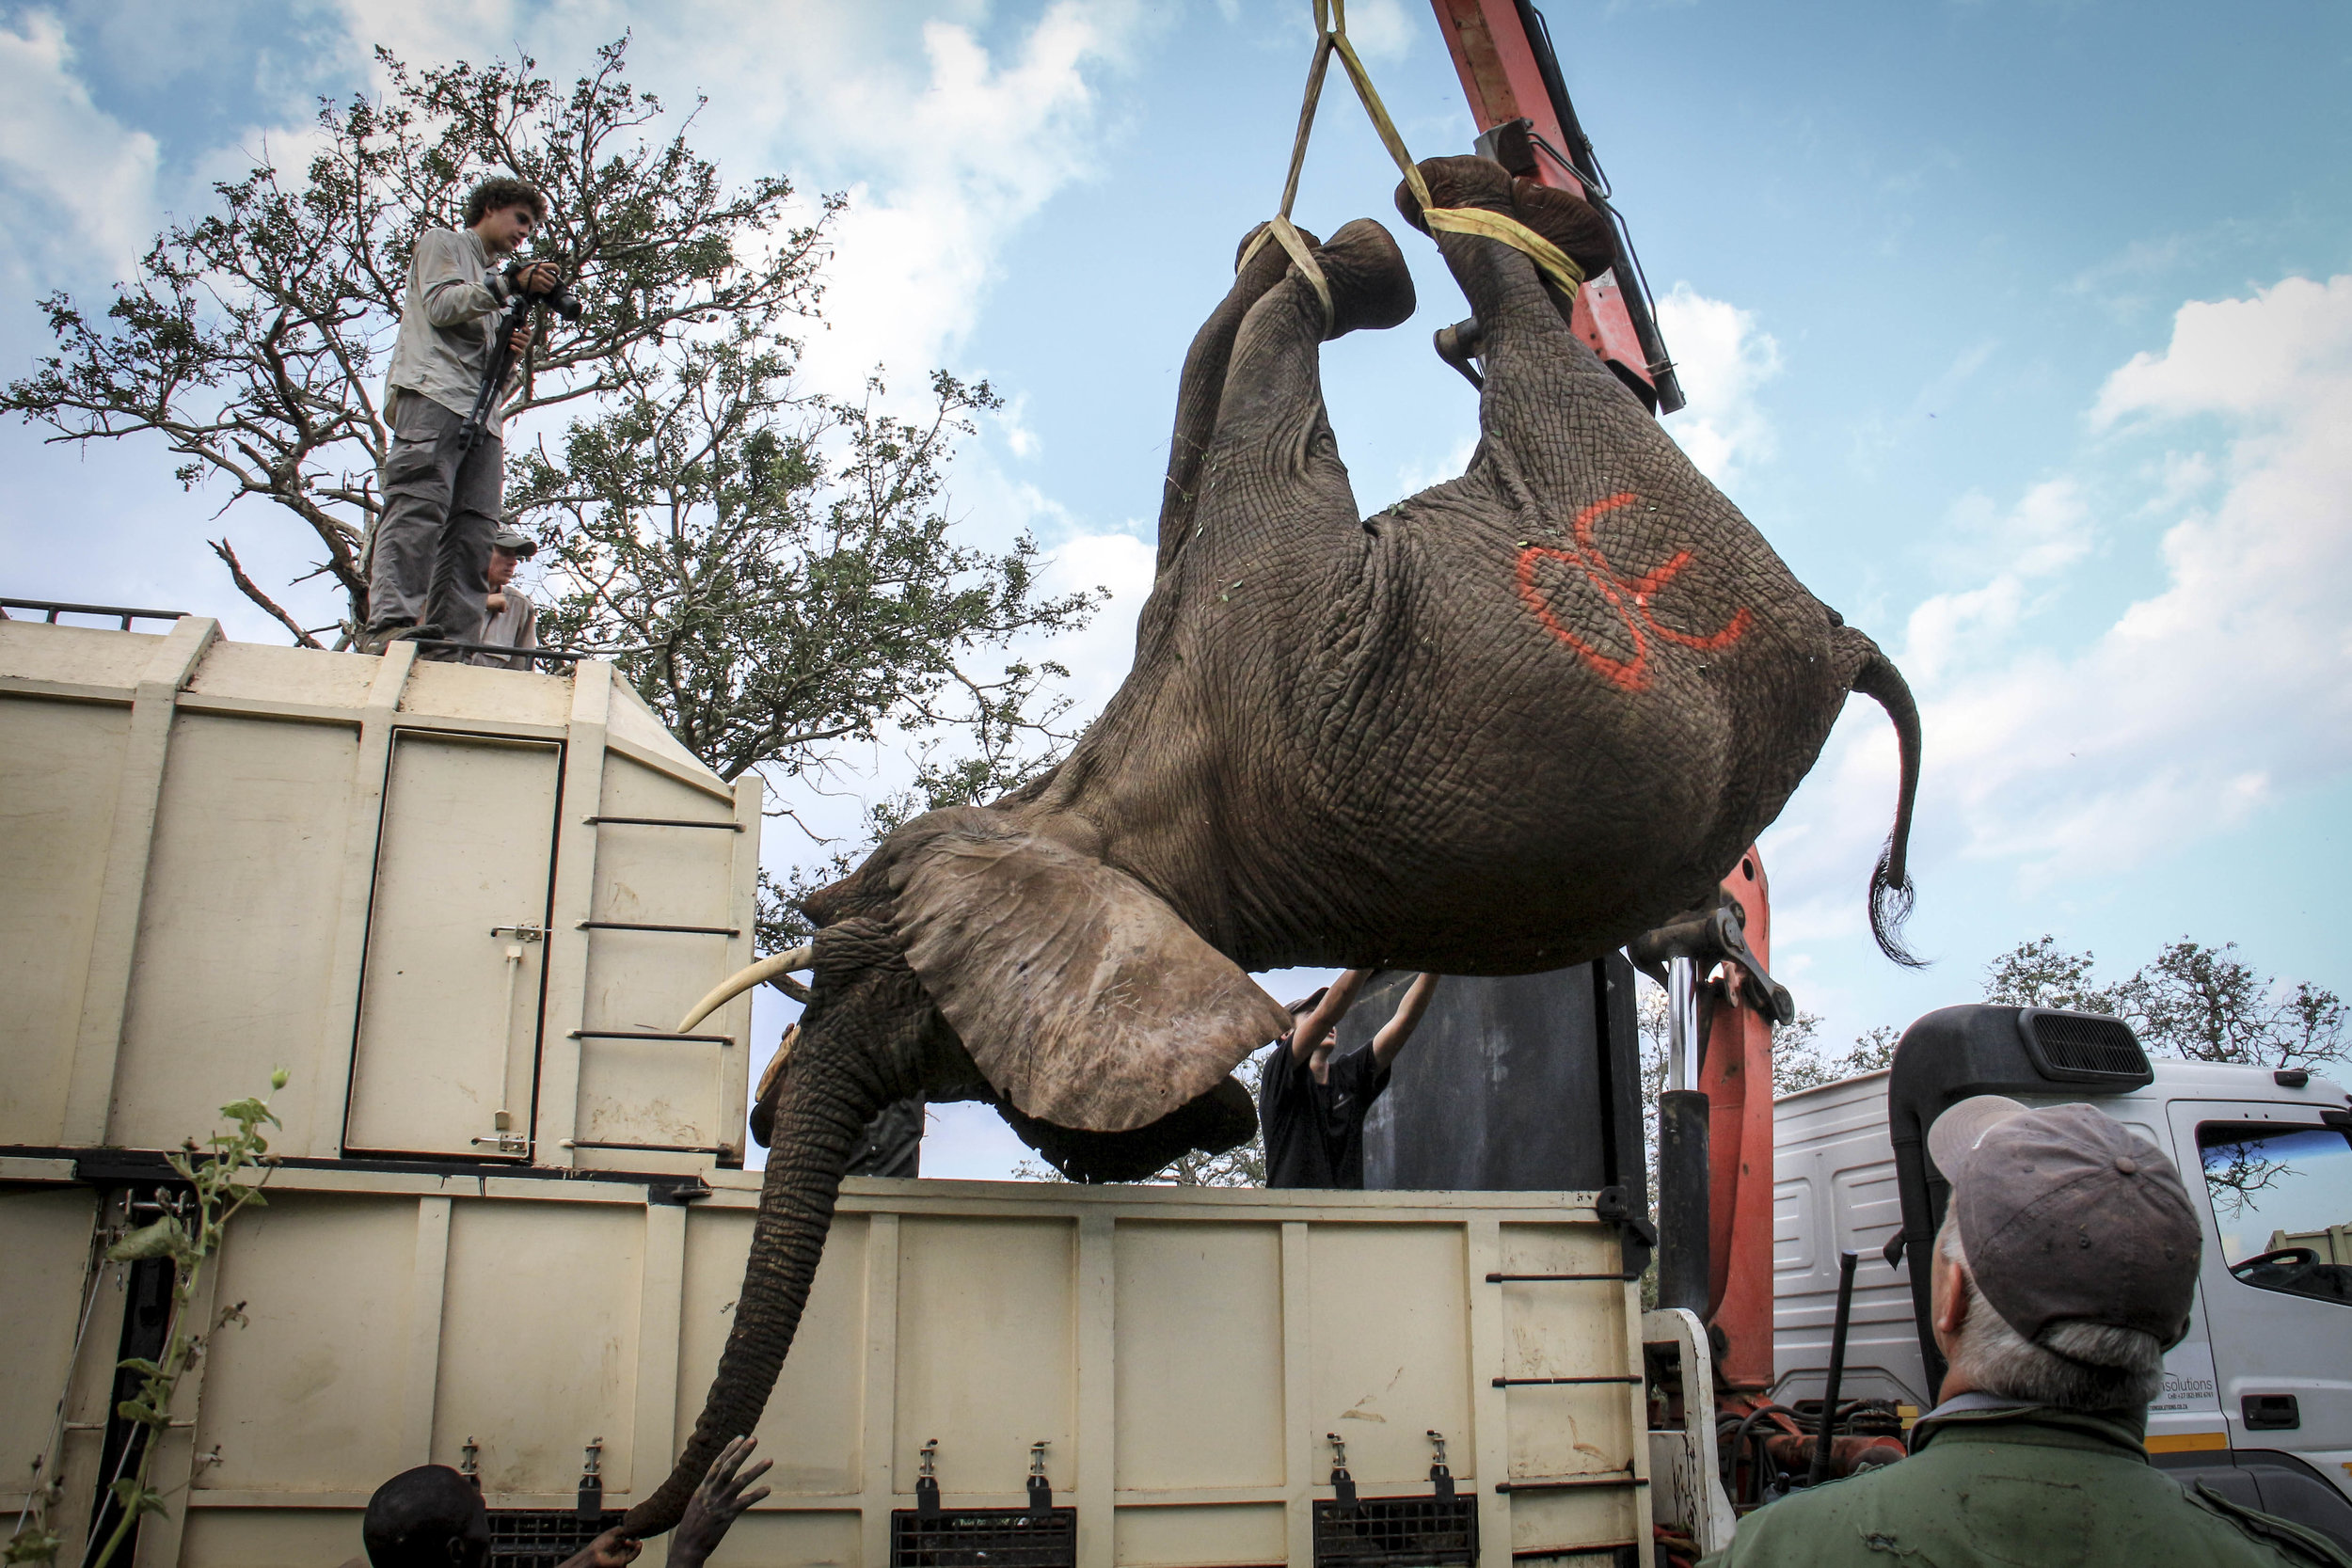 Elephant Number 30 being moved onto the truck. Photo credit: iSimangaliso Wetland Park